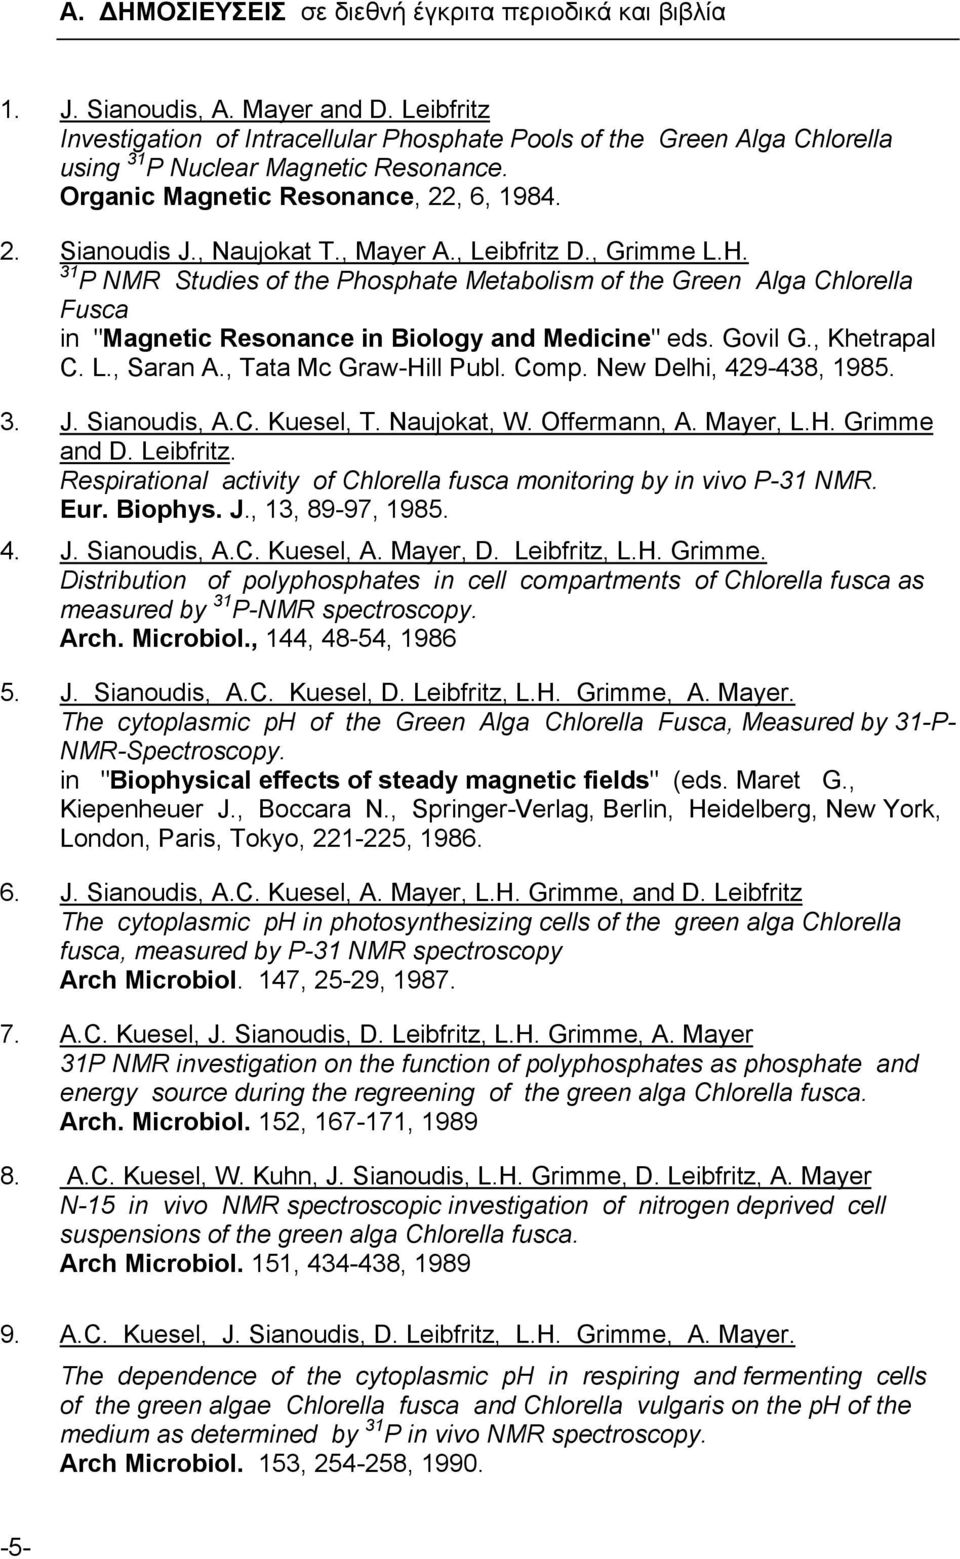 ", Mayer A., Leibfritz D., Grimme L.H. 31 P NMR Studies of the Phosphate Metabolism of the Green Alga Chlorella Fusca in ""Magnetic Resonance in Biology and Medicine"" eds. Govil G., Khetrapal C. L., Saran A."